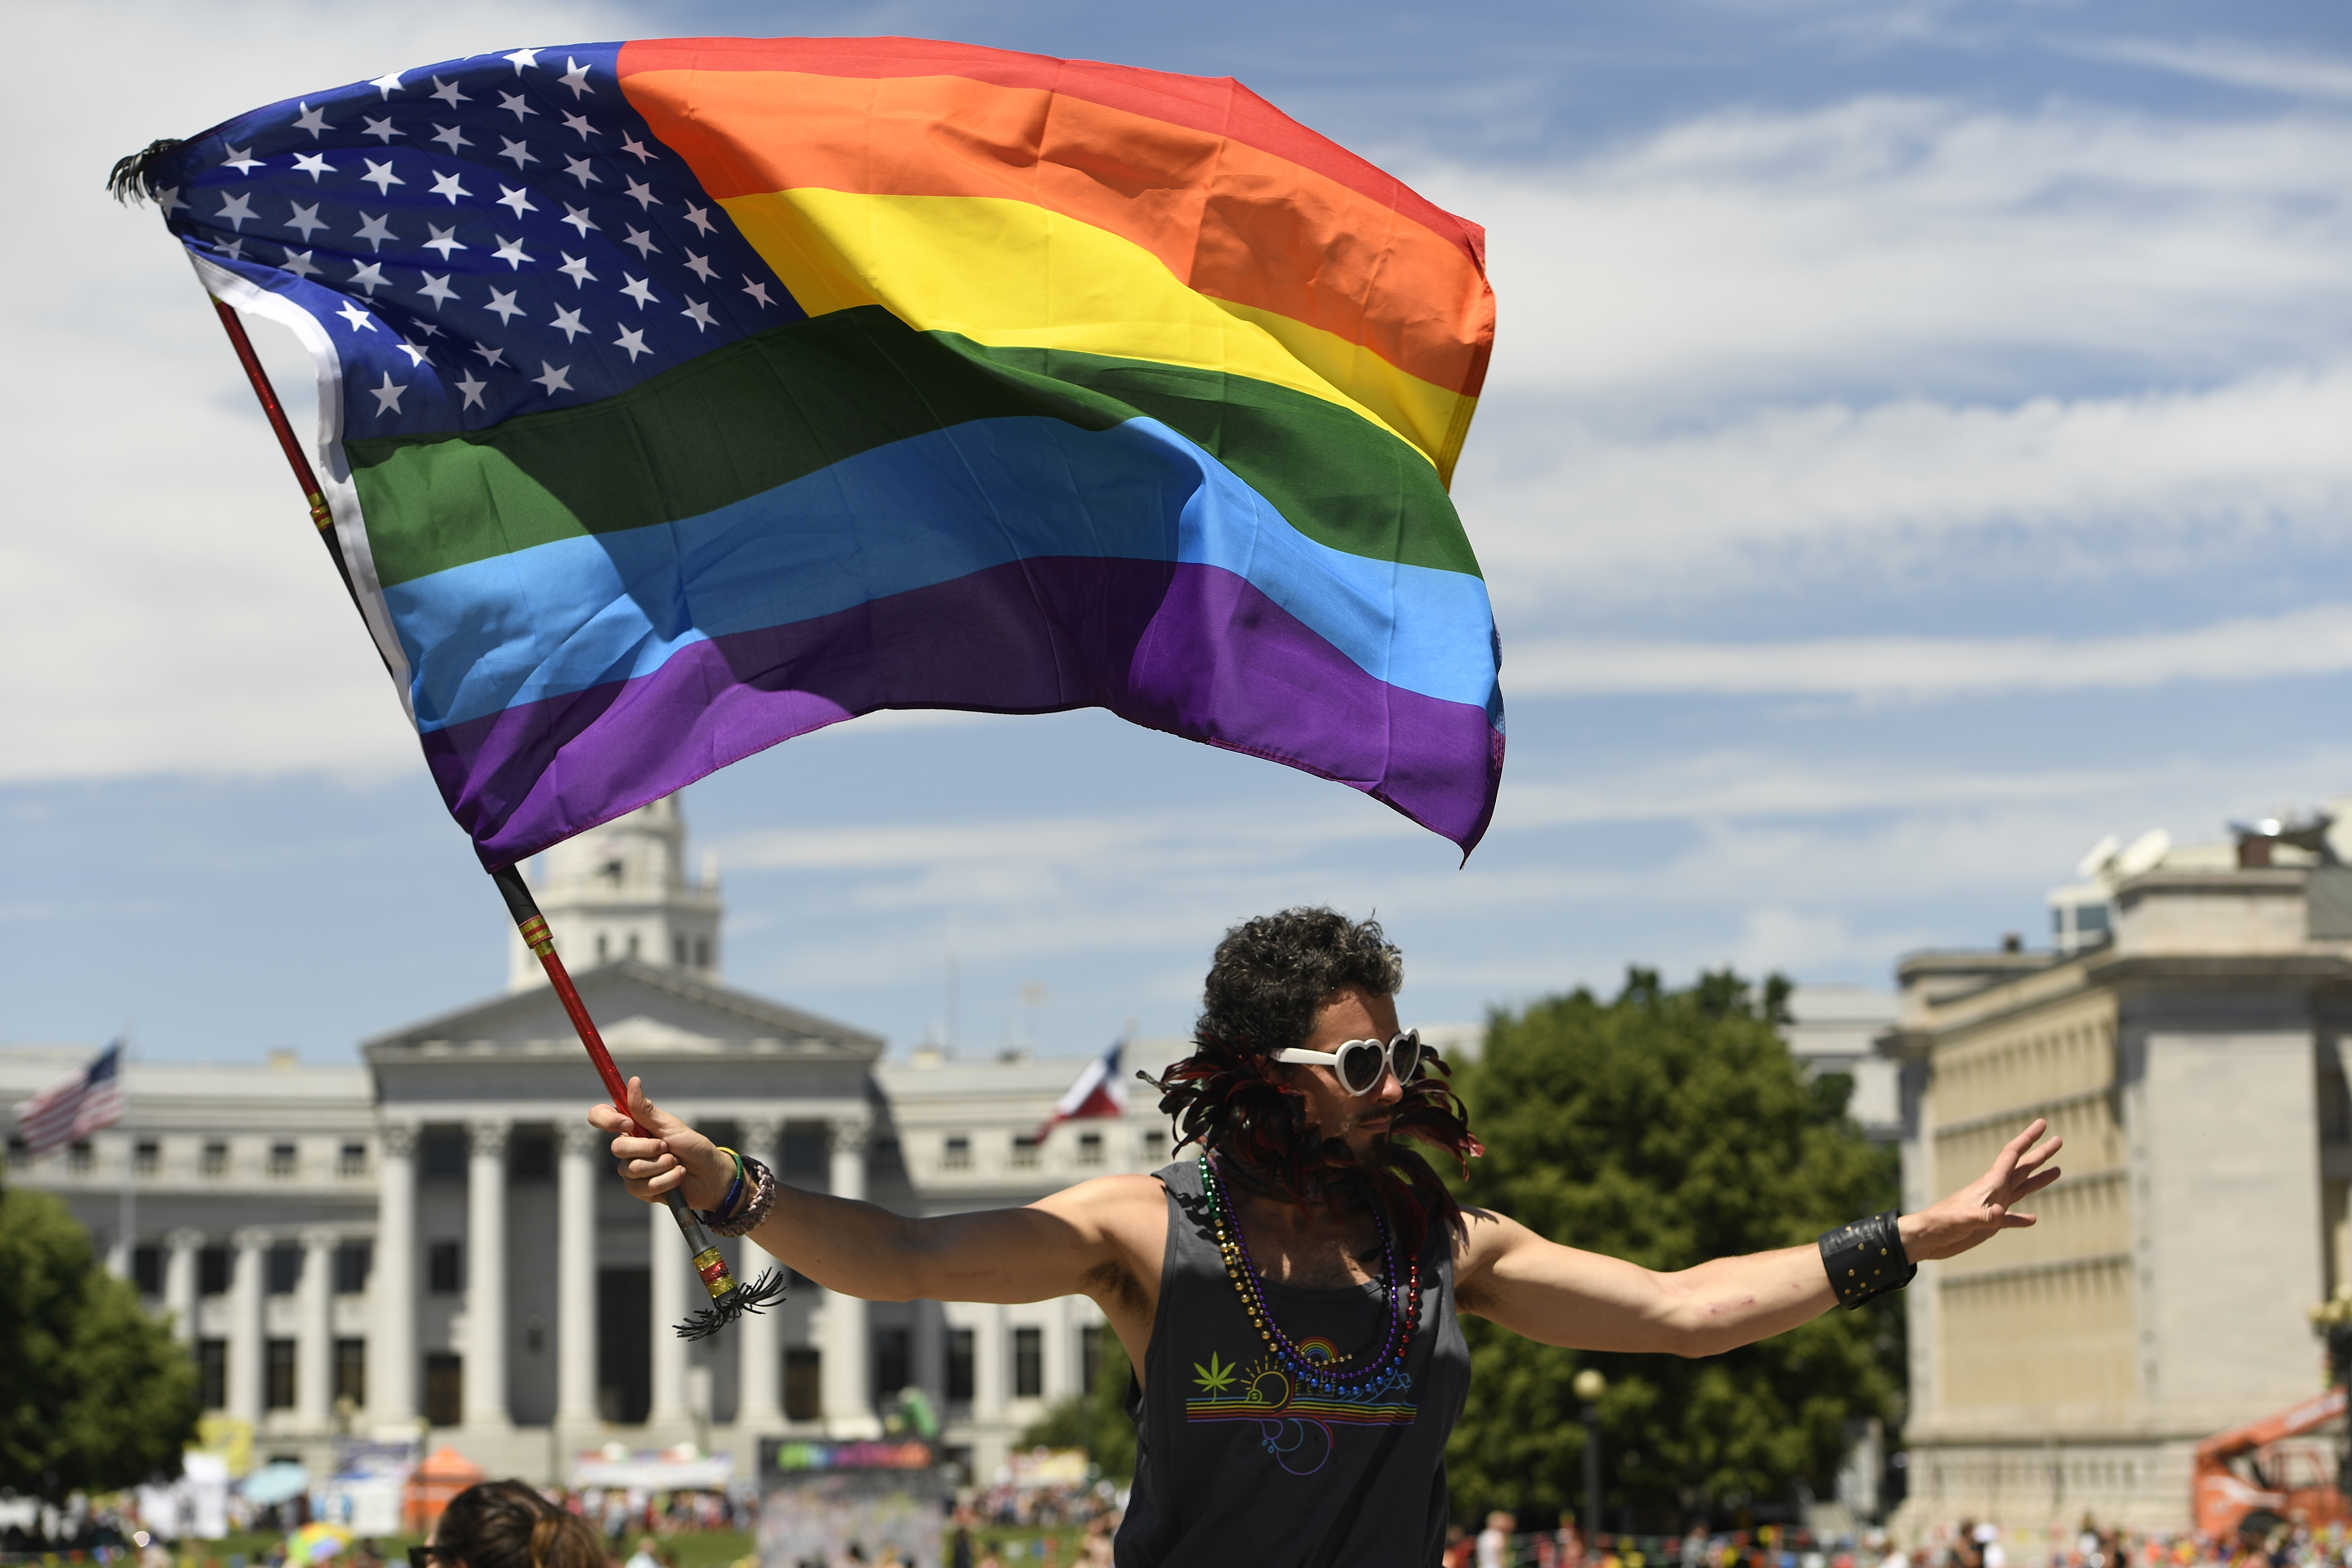 A man known as Mister Mischievous flies a Rainbow flag mixed with an American flag at Civic Center Park during the annual Denver PrideFest festivities in Denver on June 19, 2016.